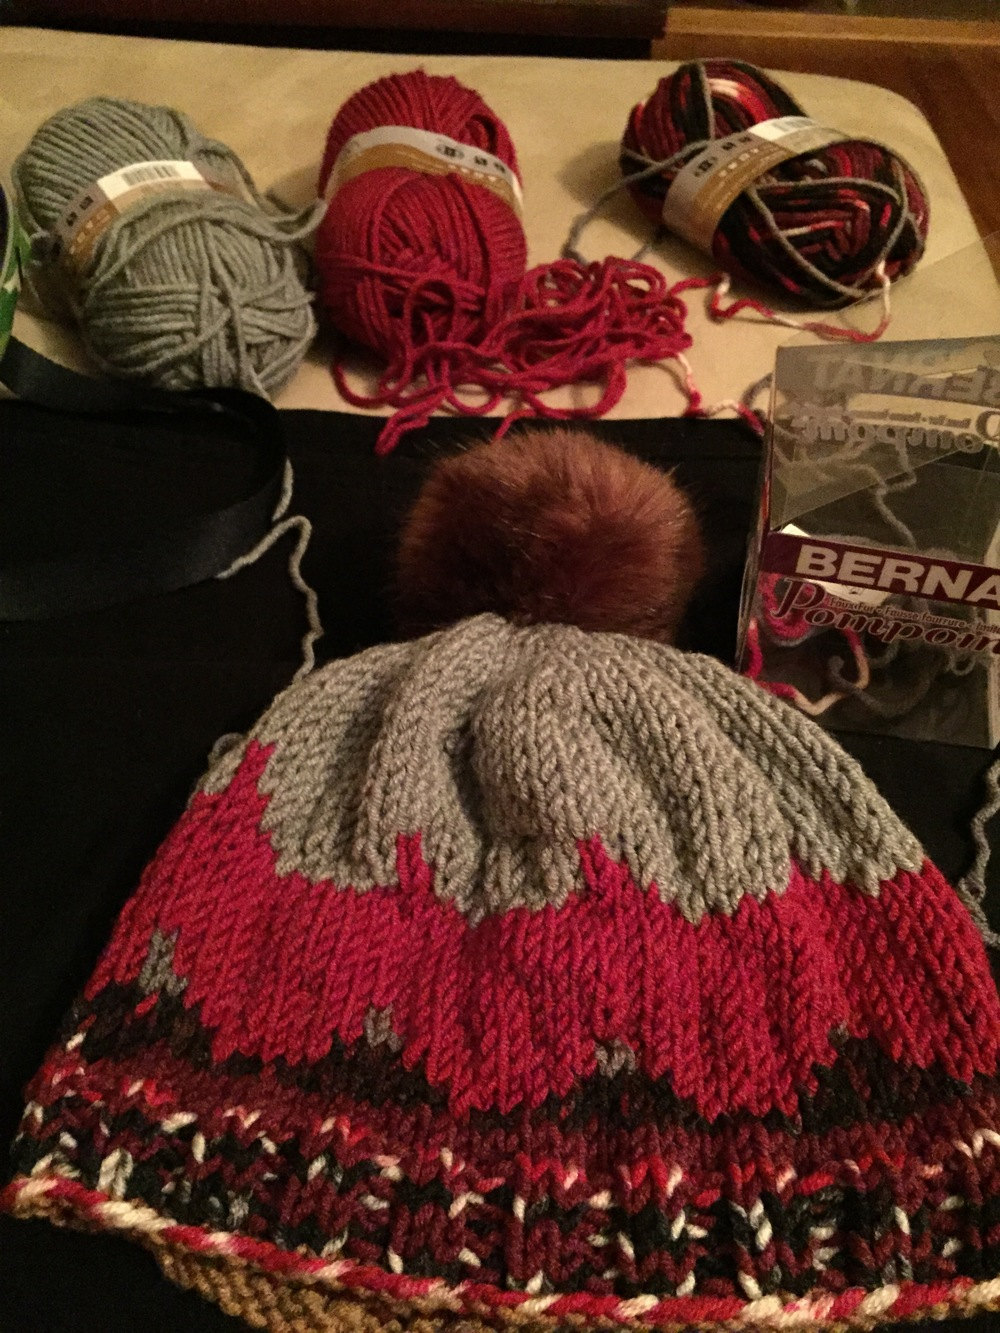 The yarn palette and the hat.